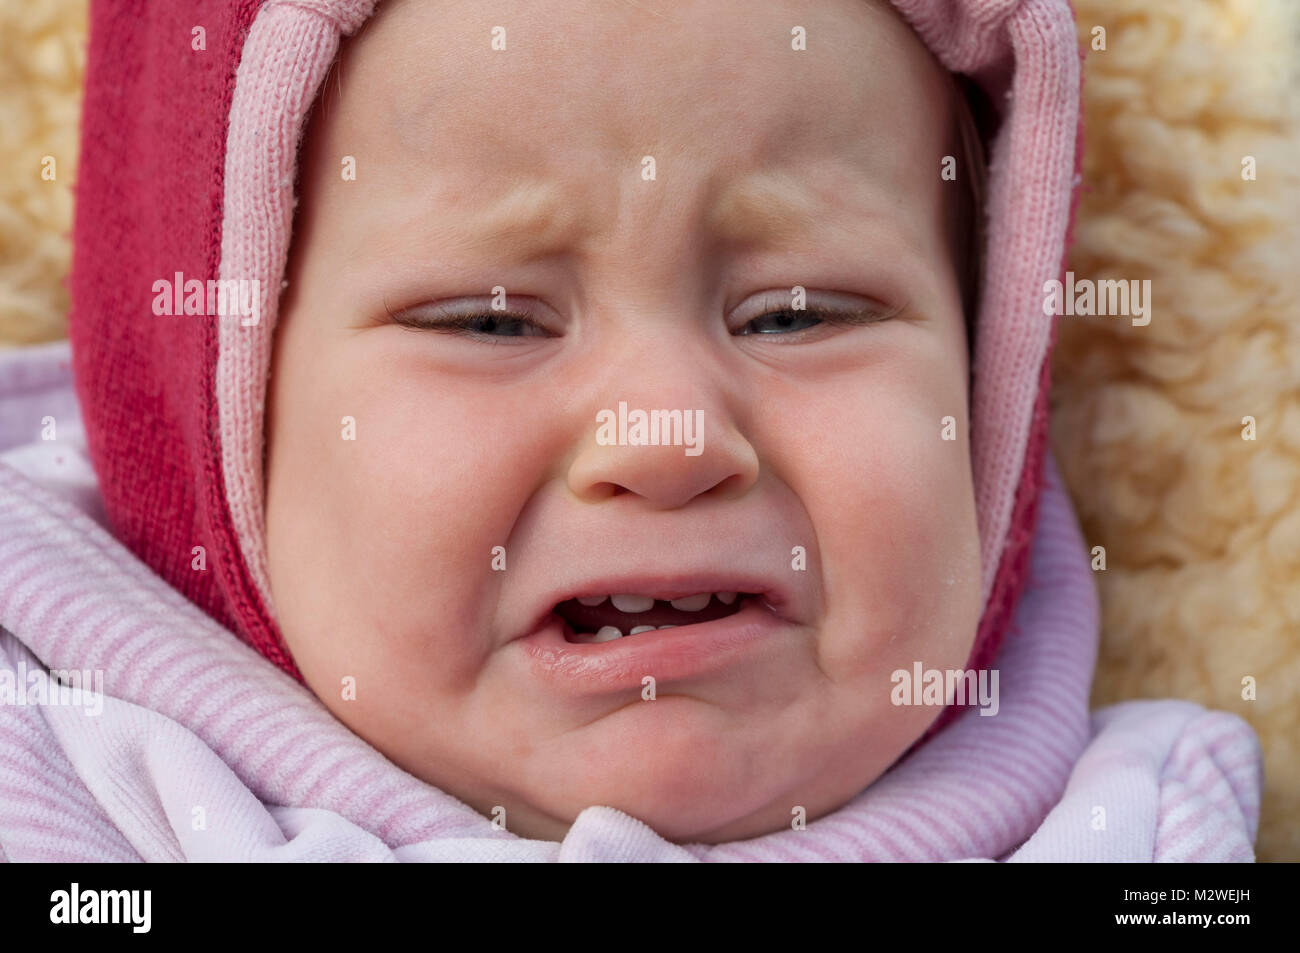 close-up-portrait-of-a-crying-toddler-M2